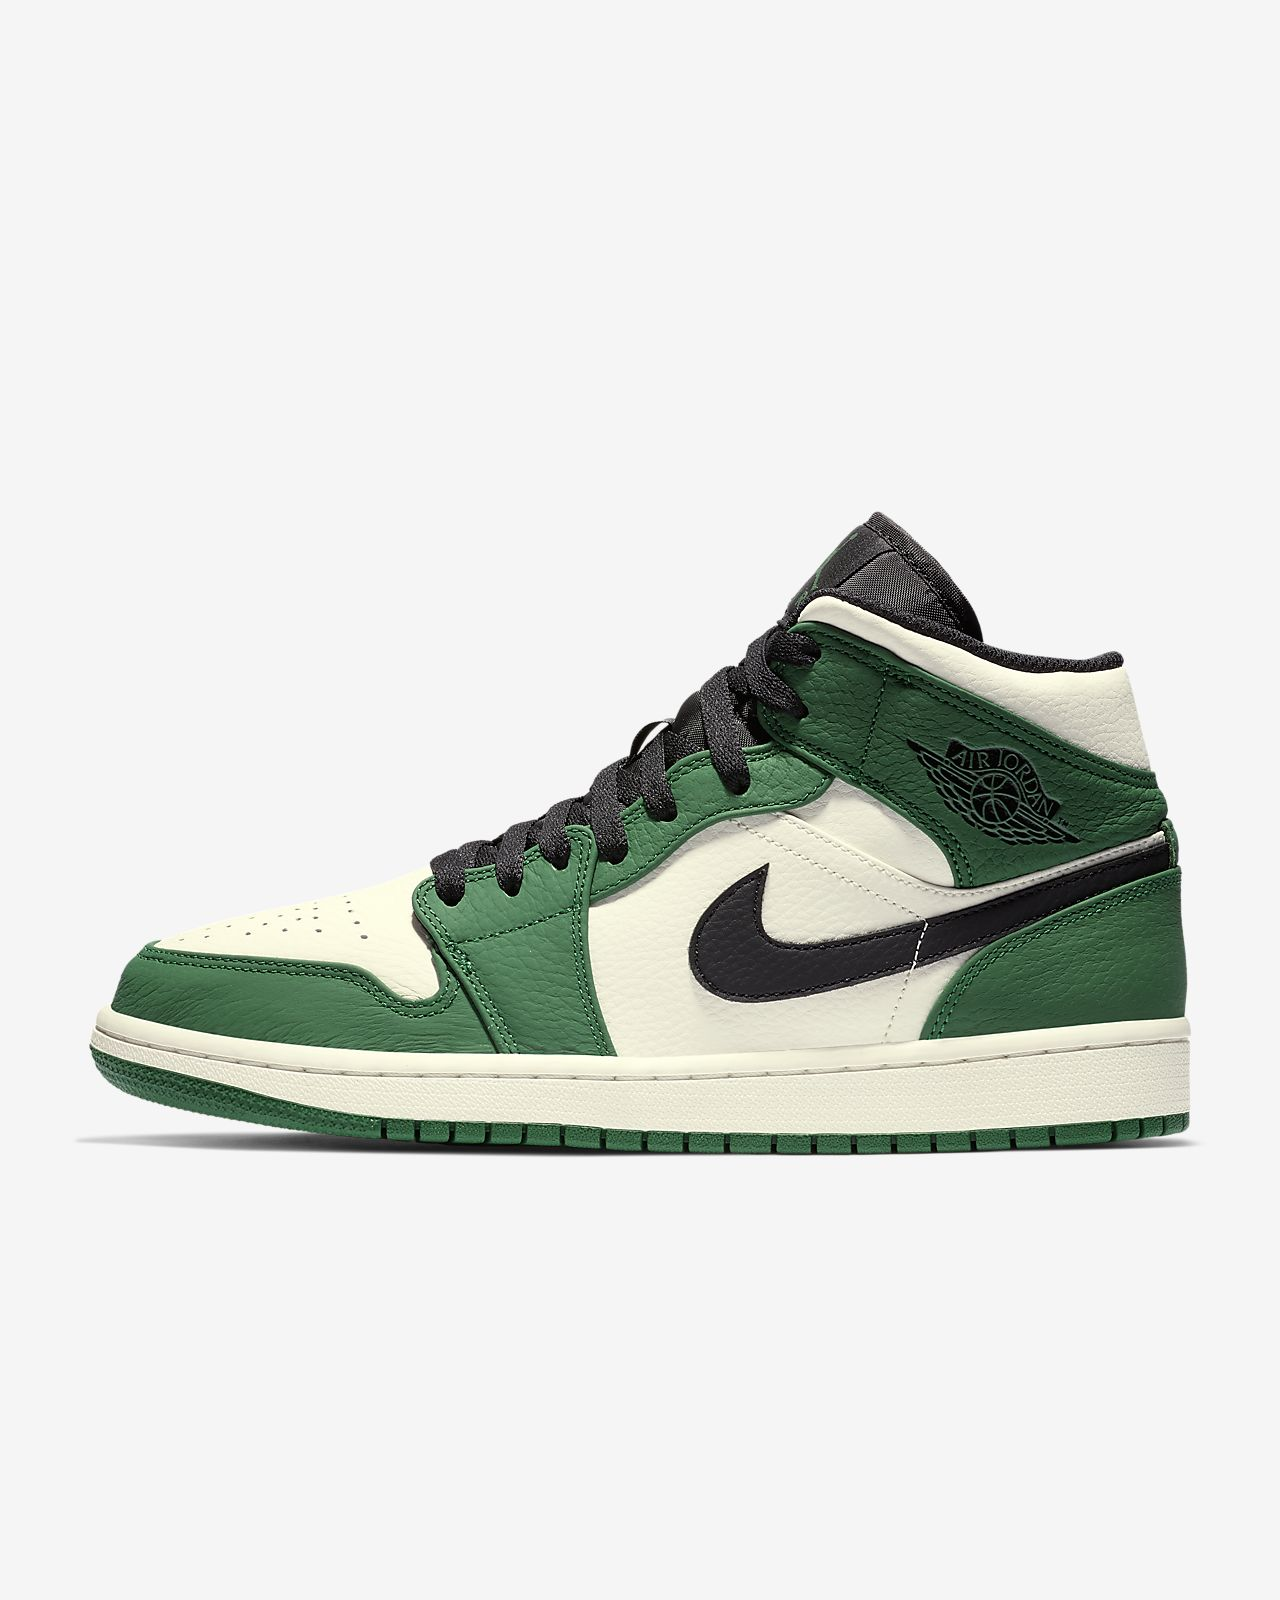 c70dddbd3fb8 Air Jordan 1 Mid SE Men s Shoe. Nike.com